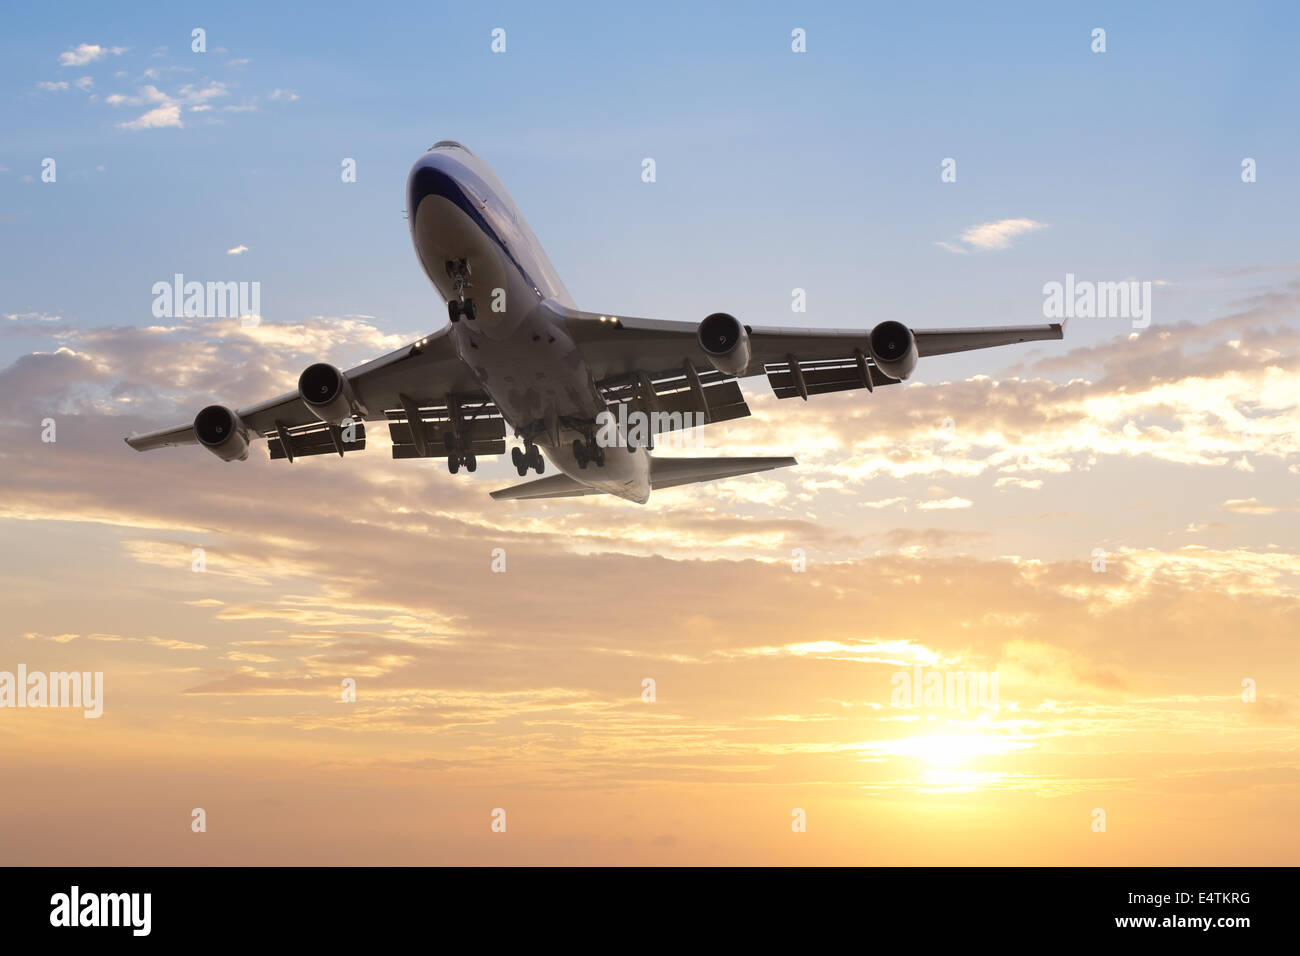 aeroplane departed at dusk with dramatic sky - Stock Image